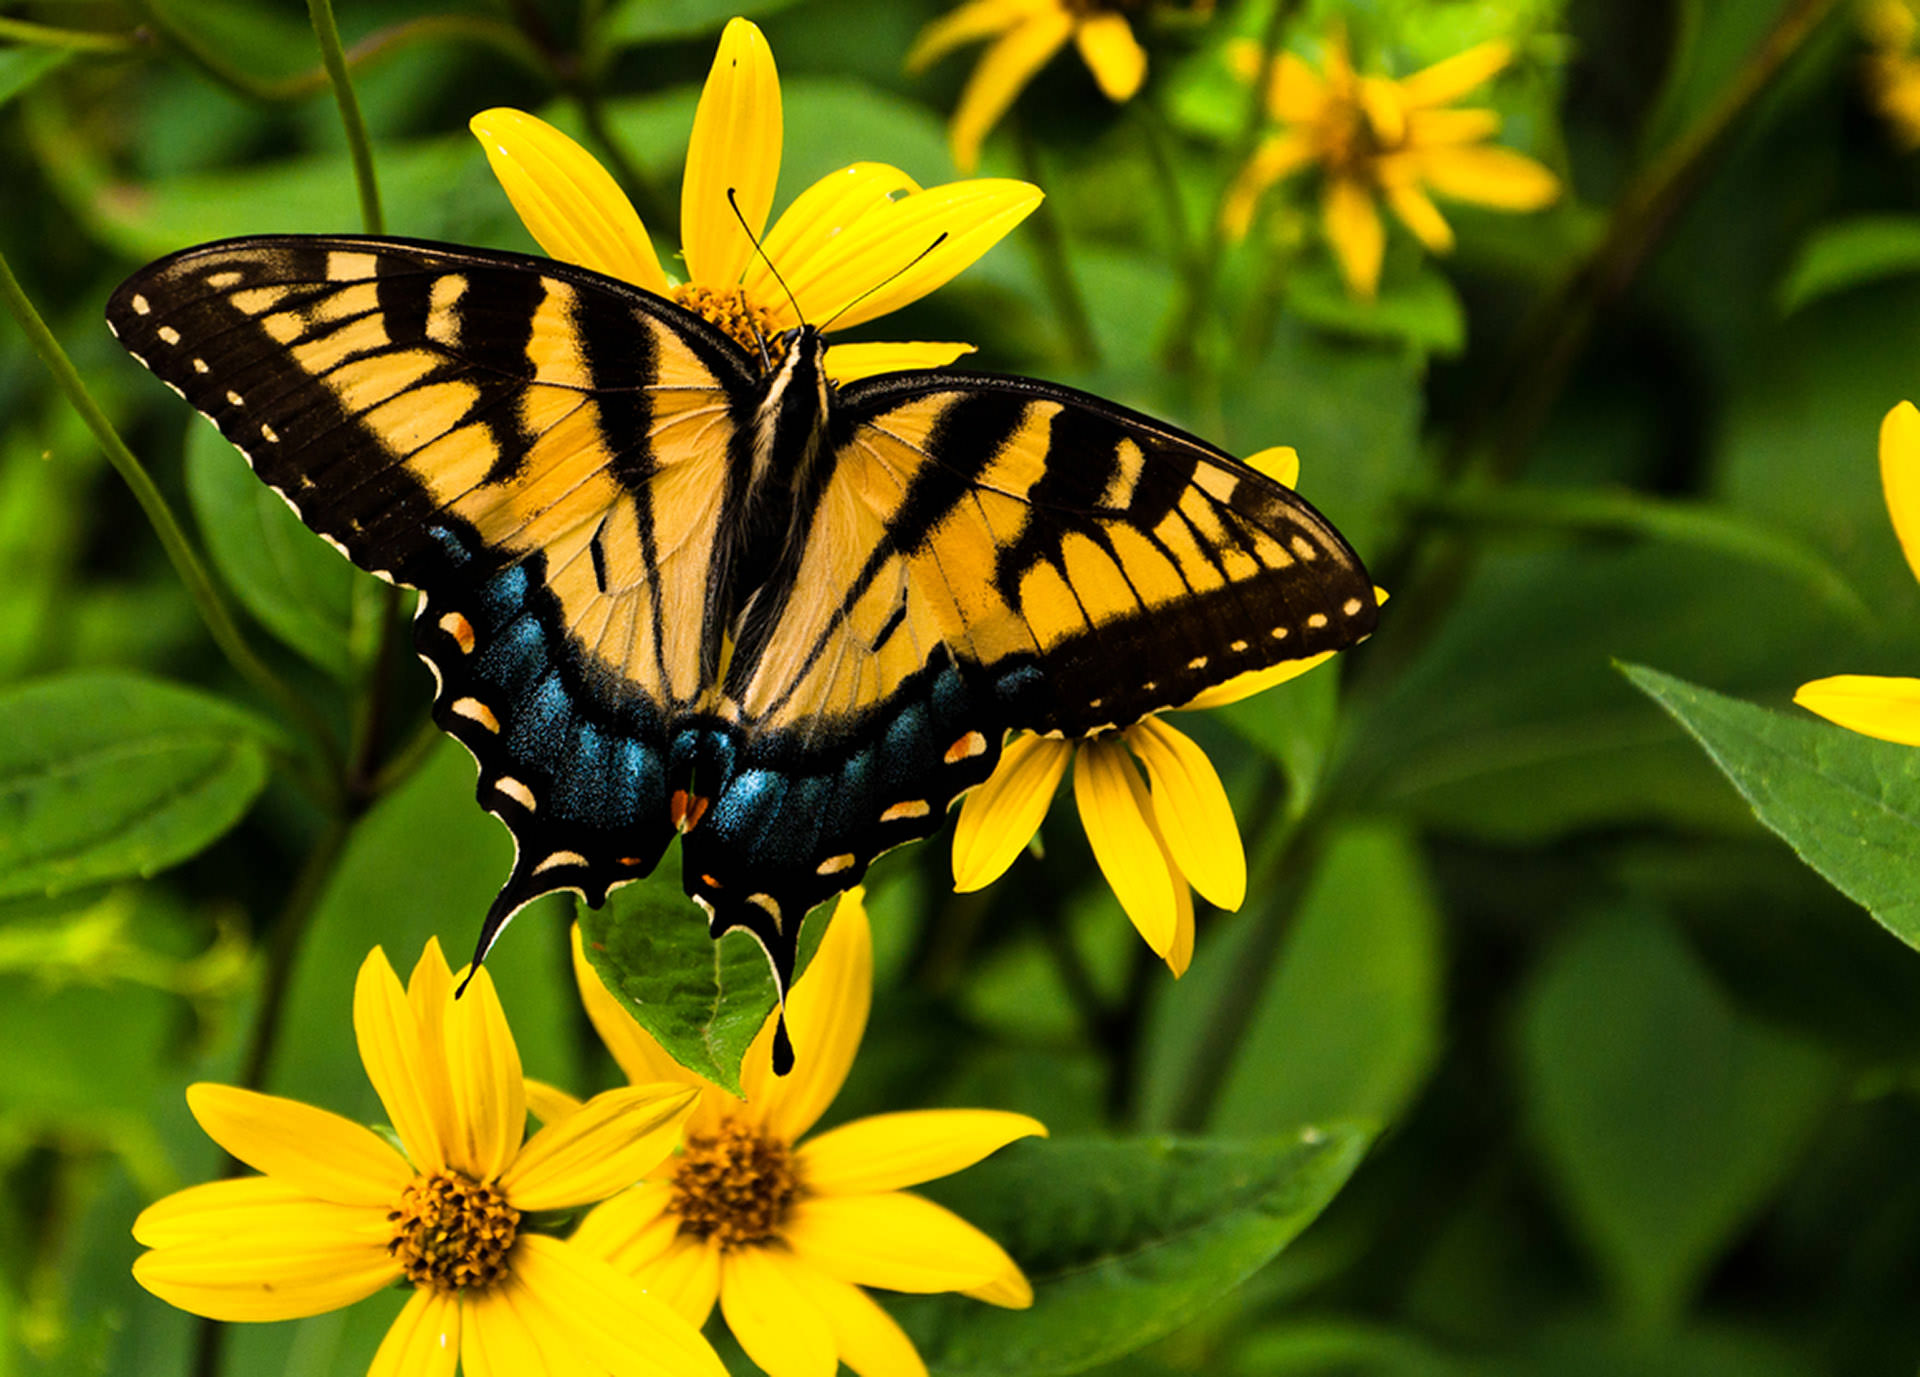 A swallowtail butterfly in Shenandoah National Park